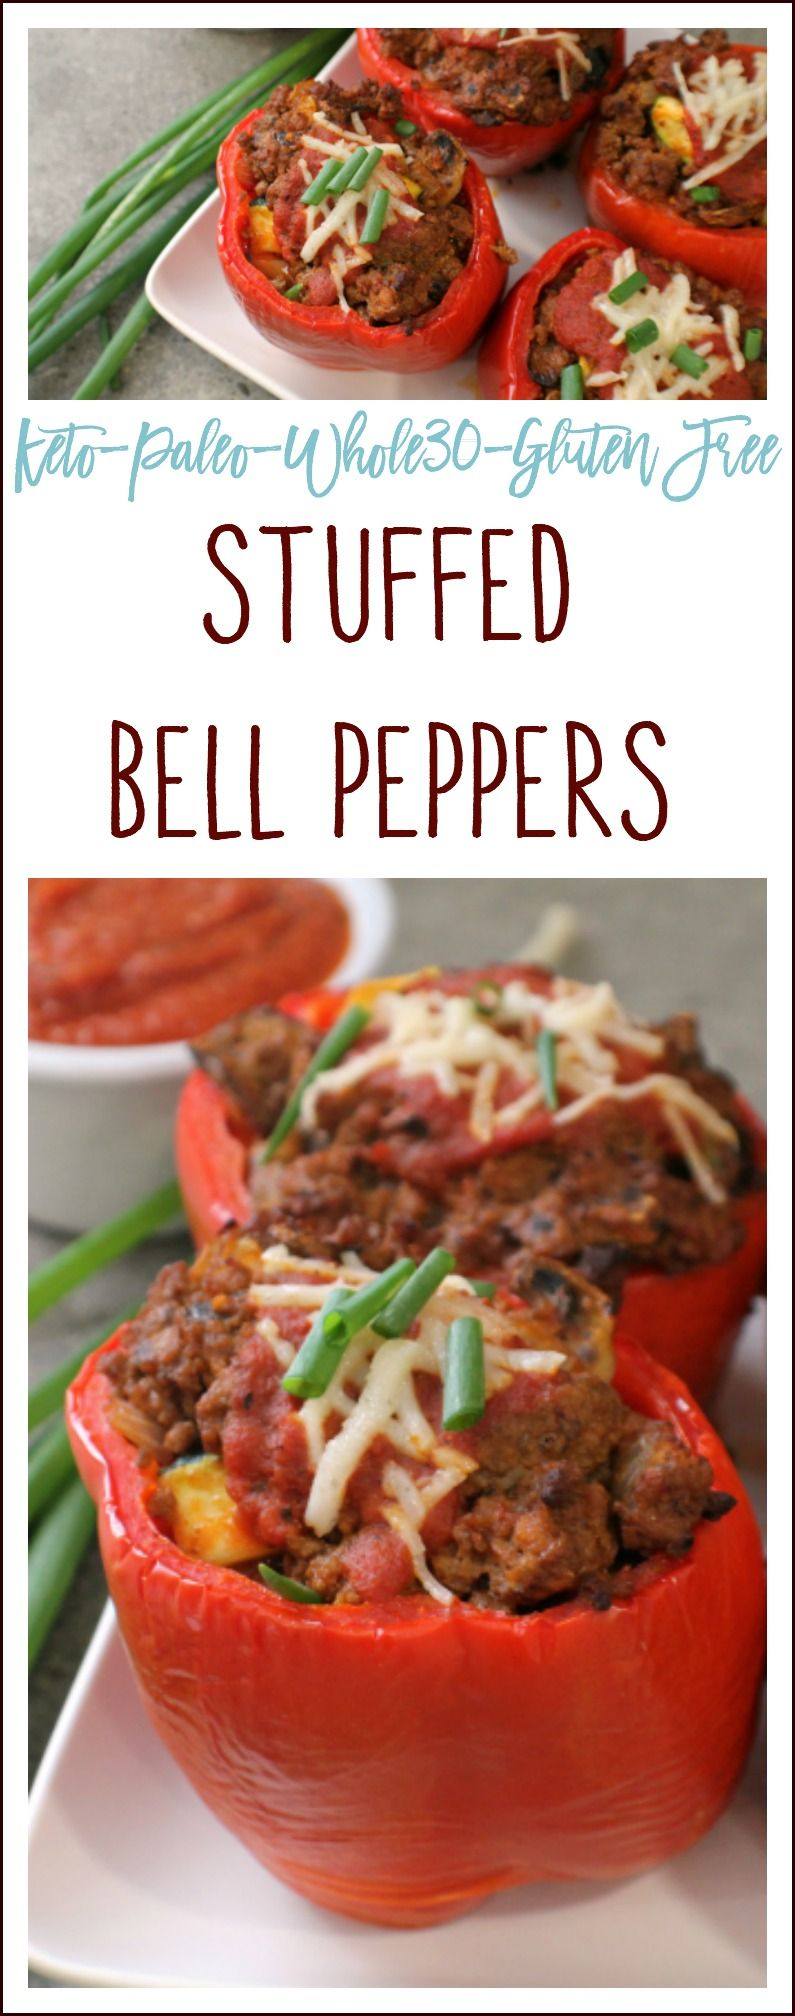 Stuffed Bell Peppers {Keto, Paleo, Dairy Free, Whole30